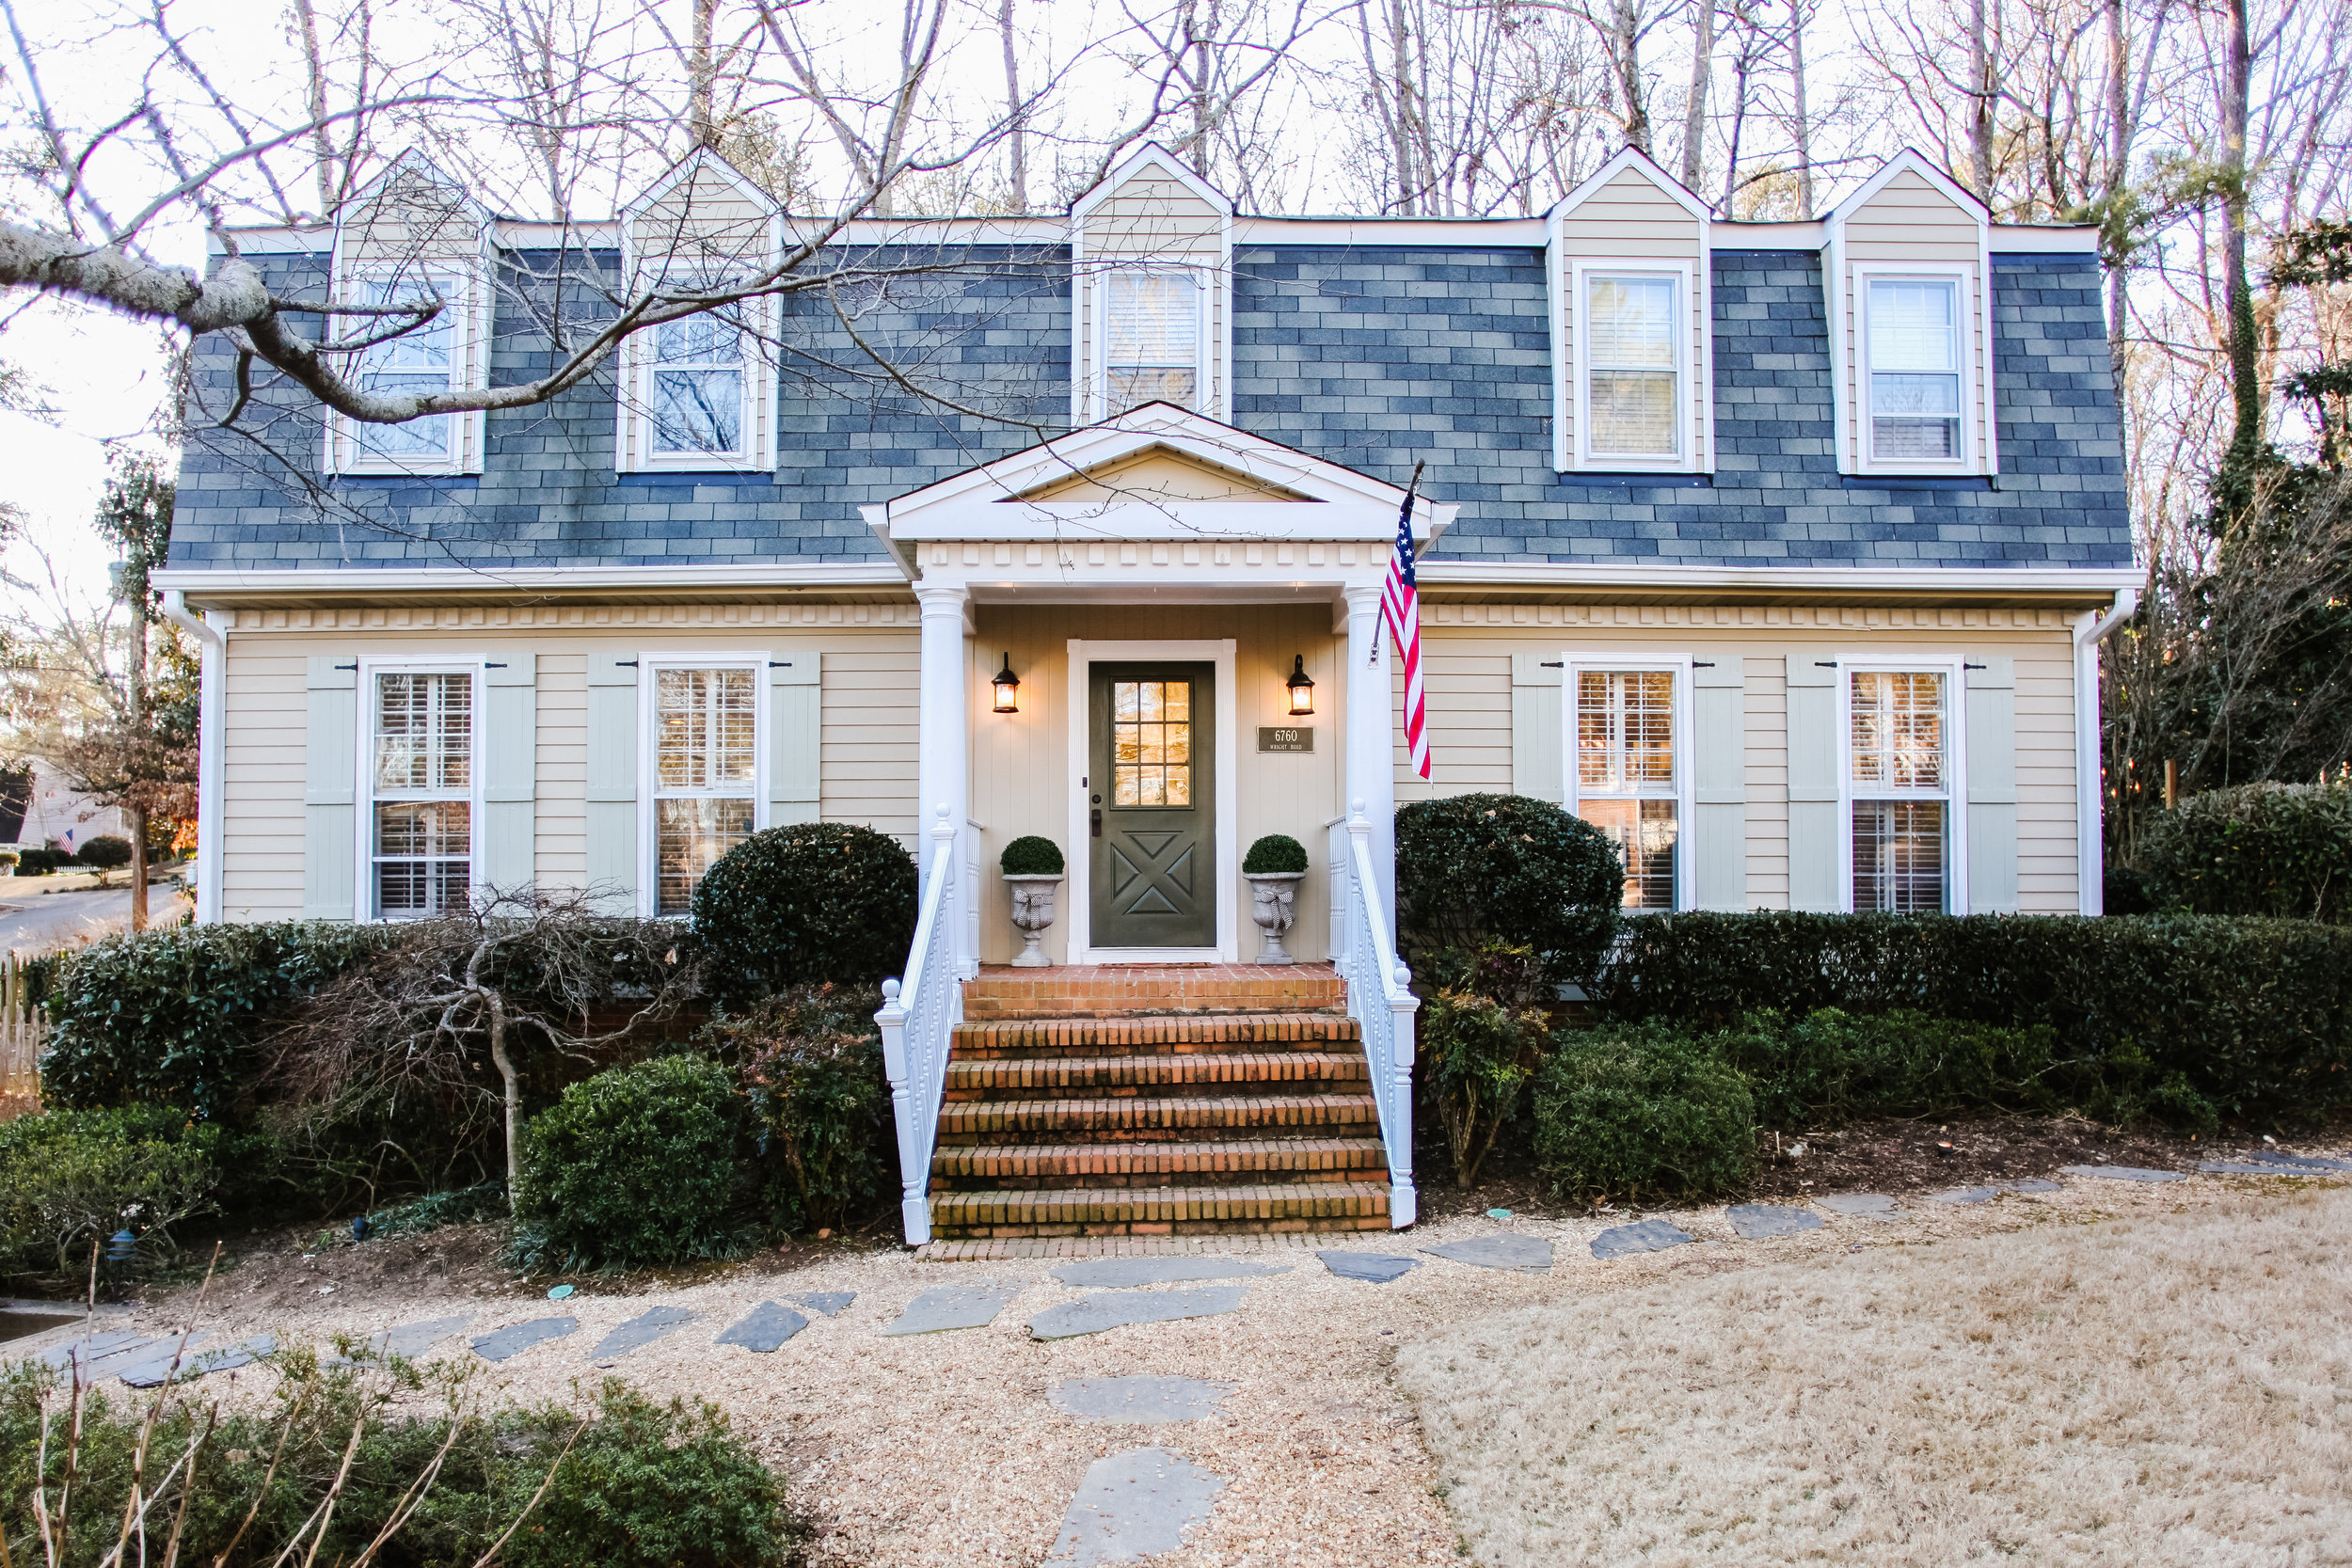 SOLD! - under contract within 36 hours for more than askign price!